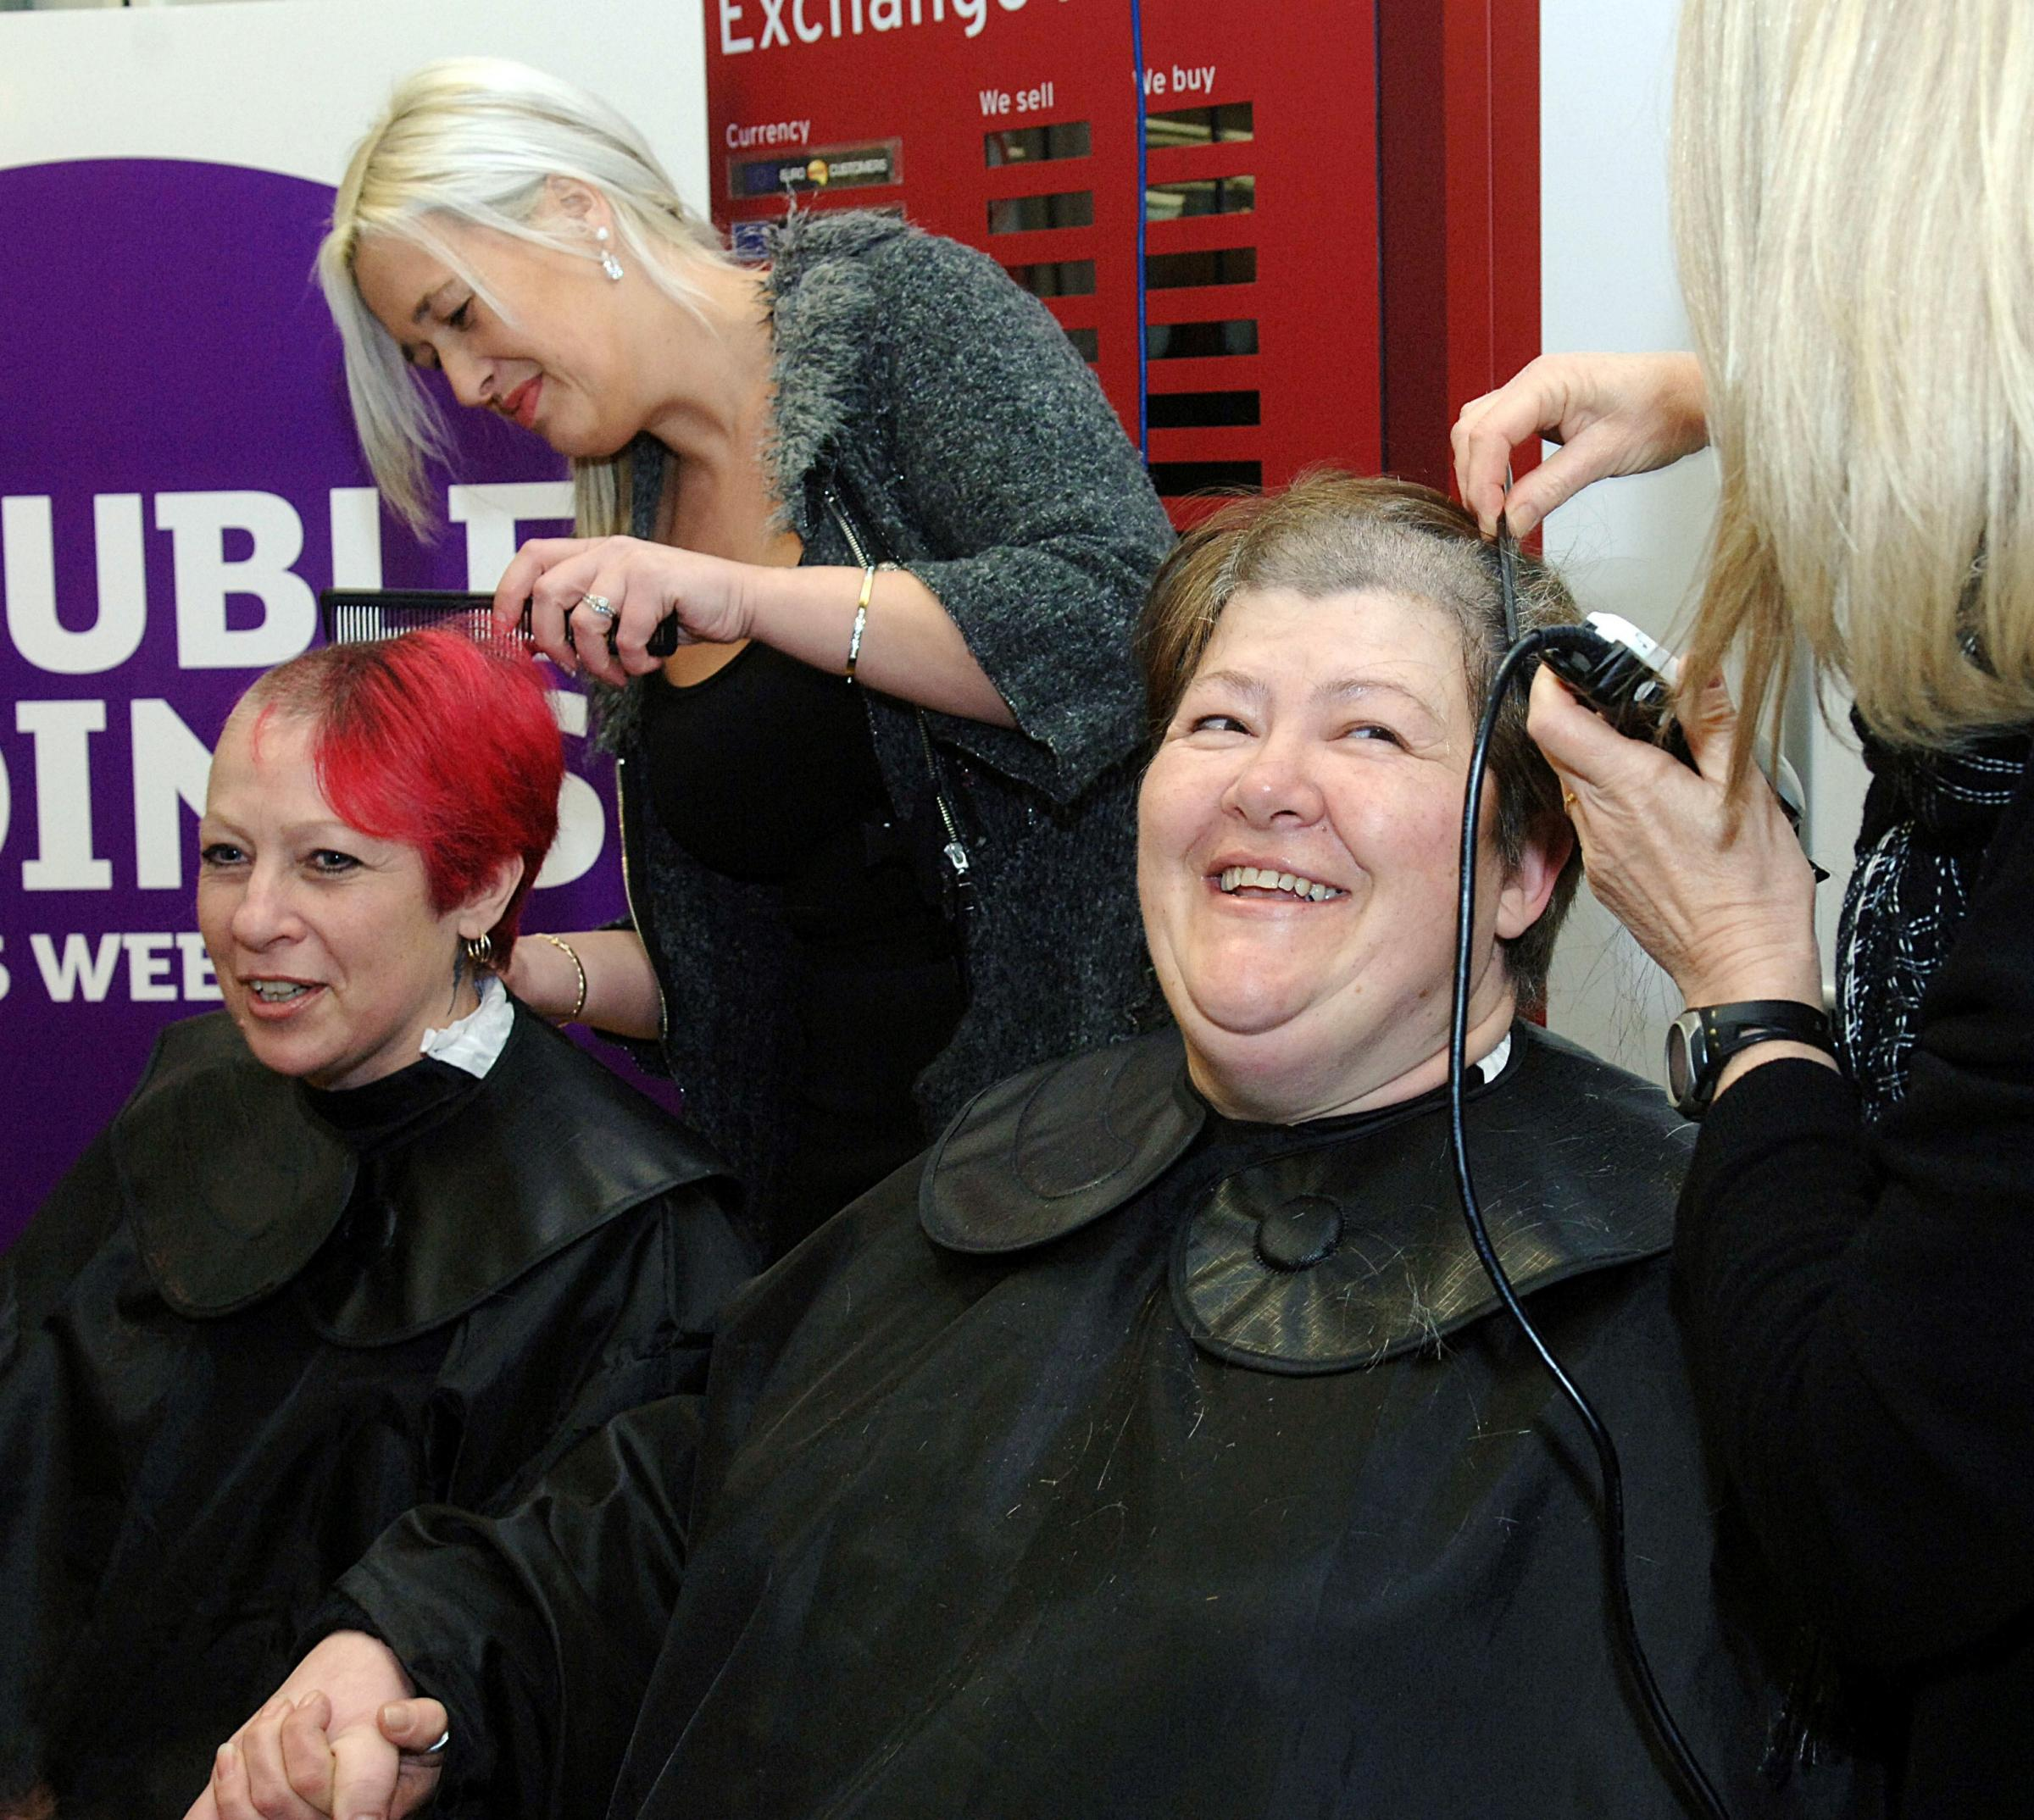 Lisa 'Tink' Cope, left, having her hair shaved by hairdresser Catherine O'Rourke, and Deborah Smith - having her locks c